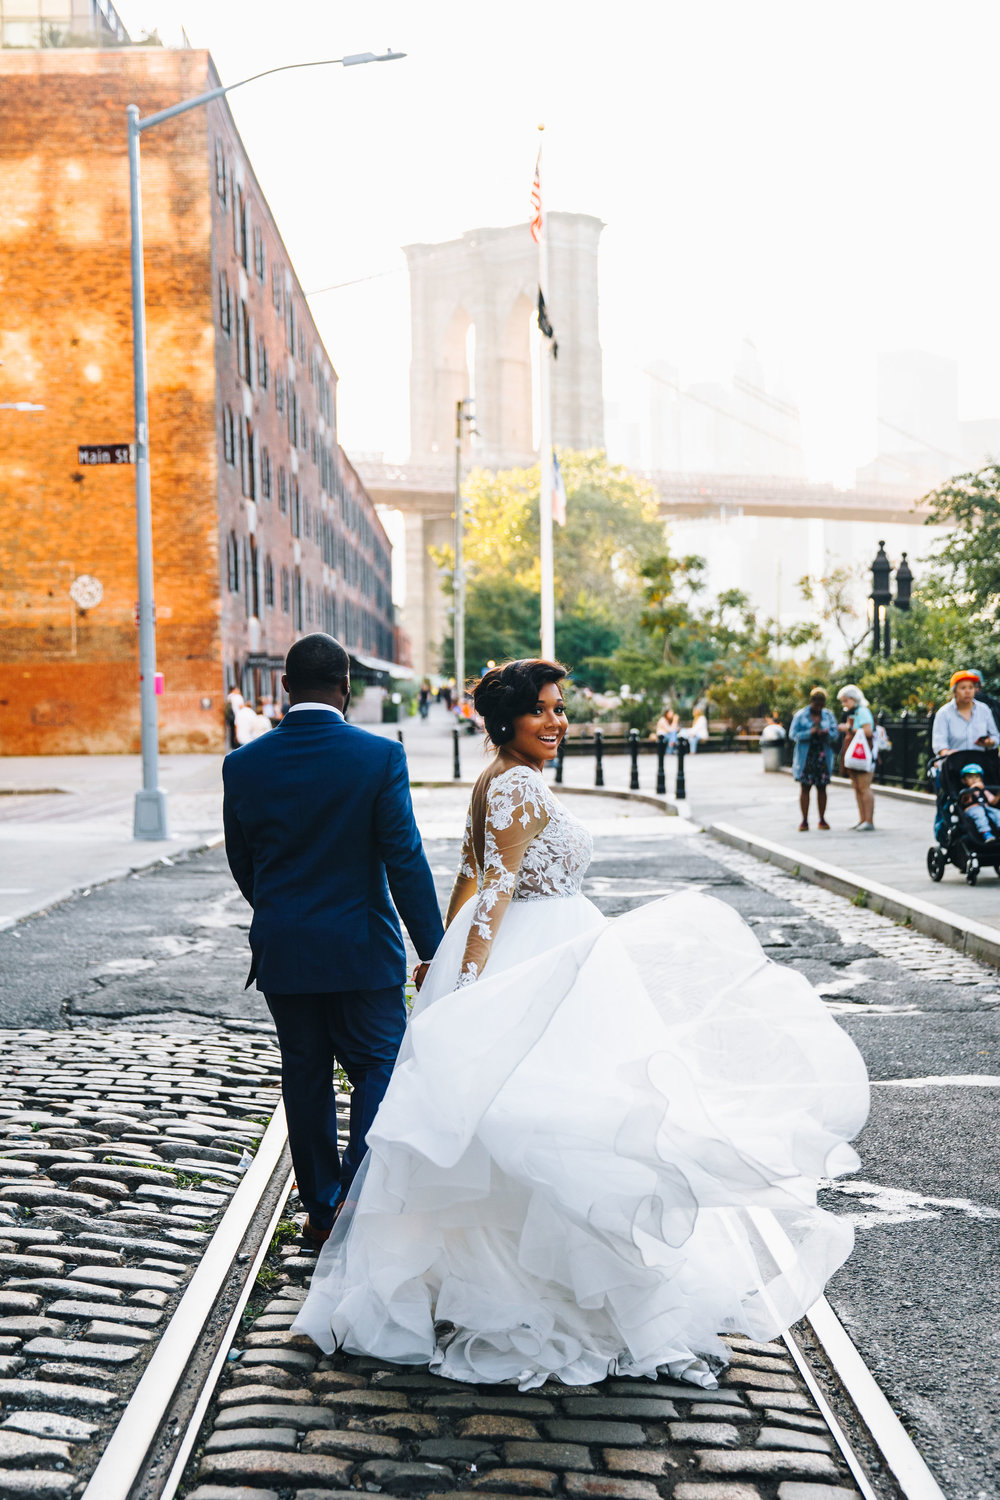 And off into magic hour they go, happily ever after. <3   All photos by  Larisa Shorina Photography.